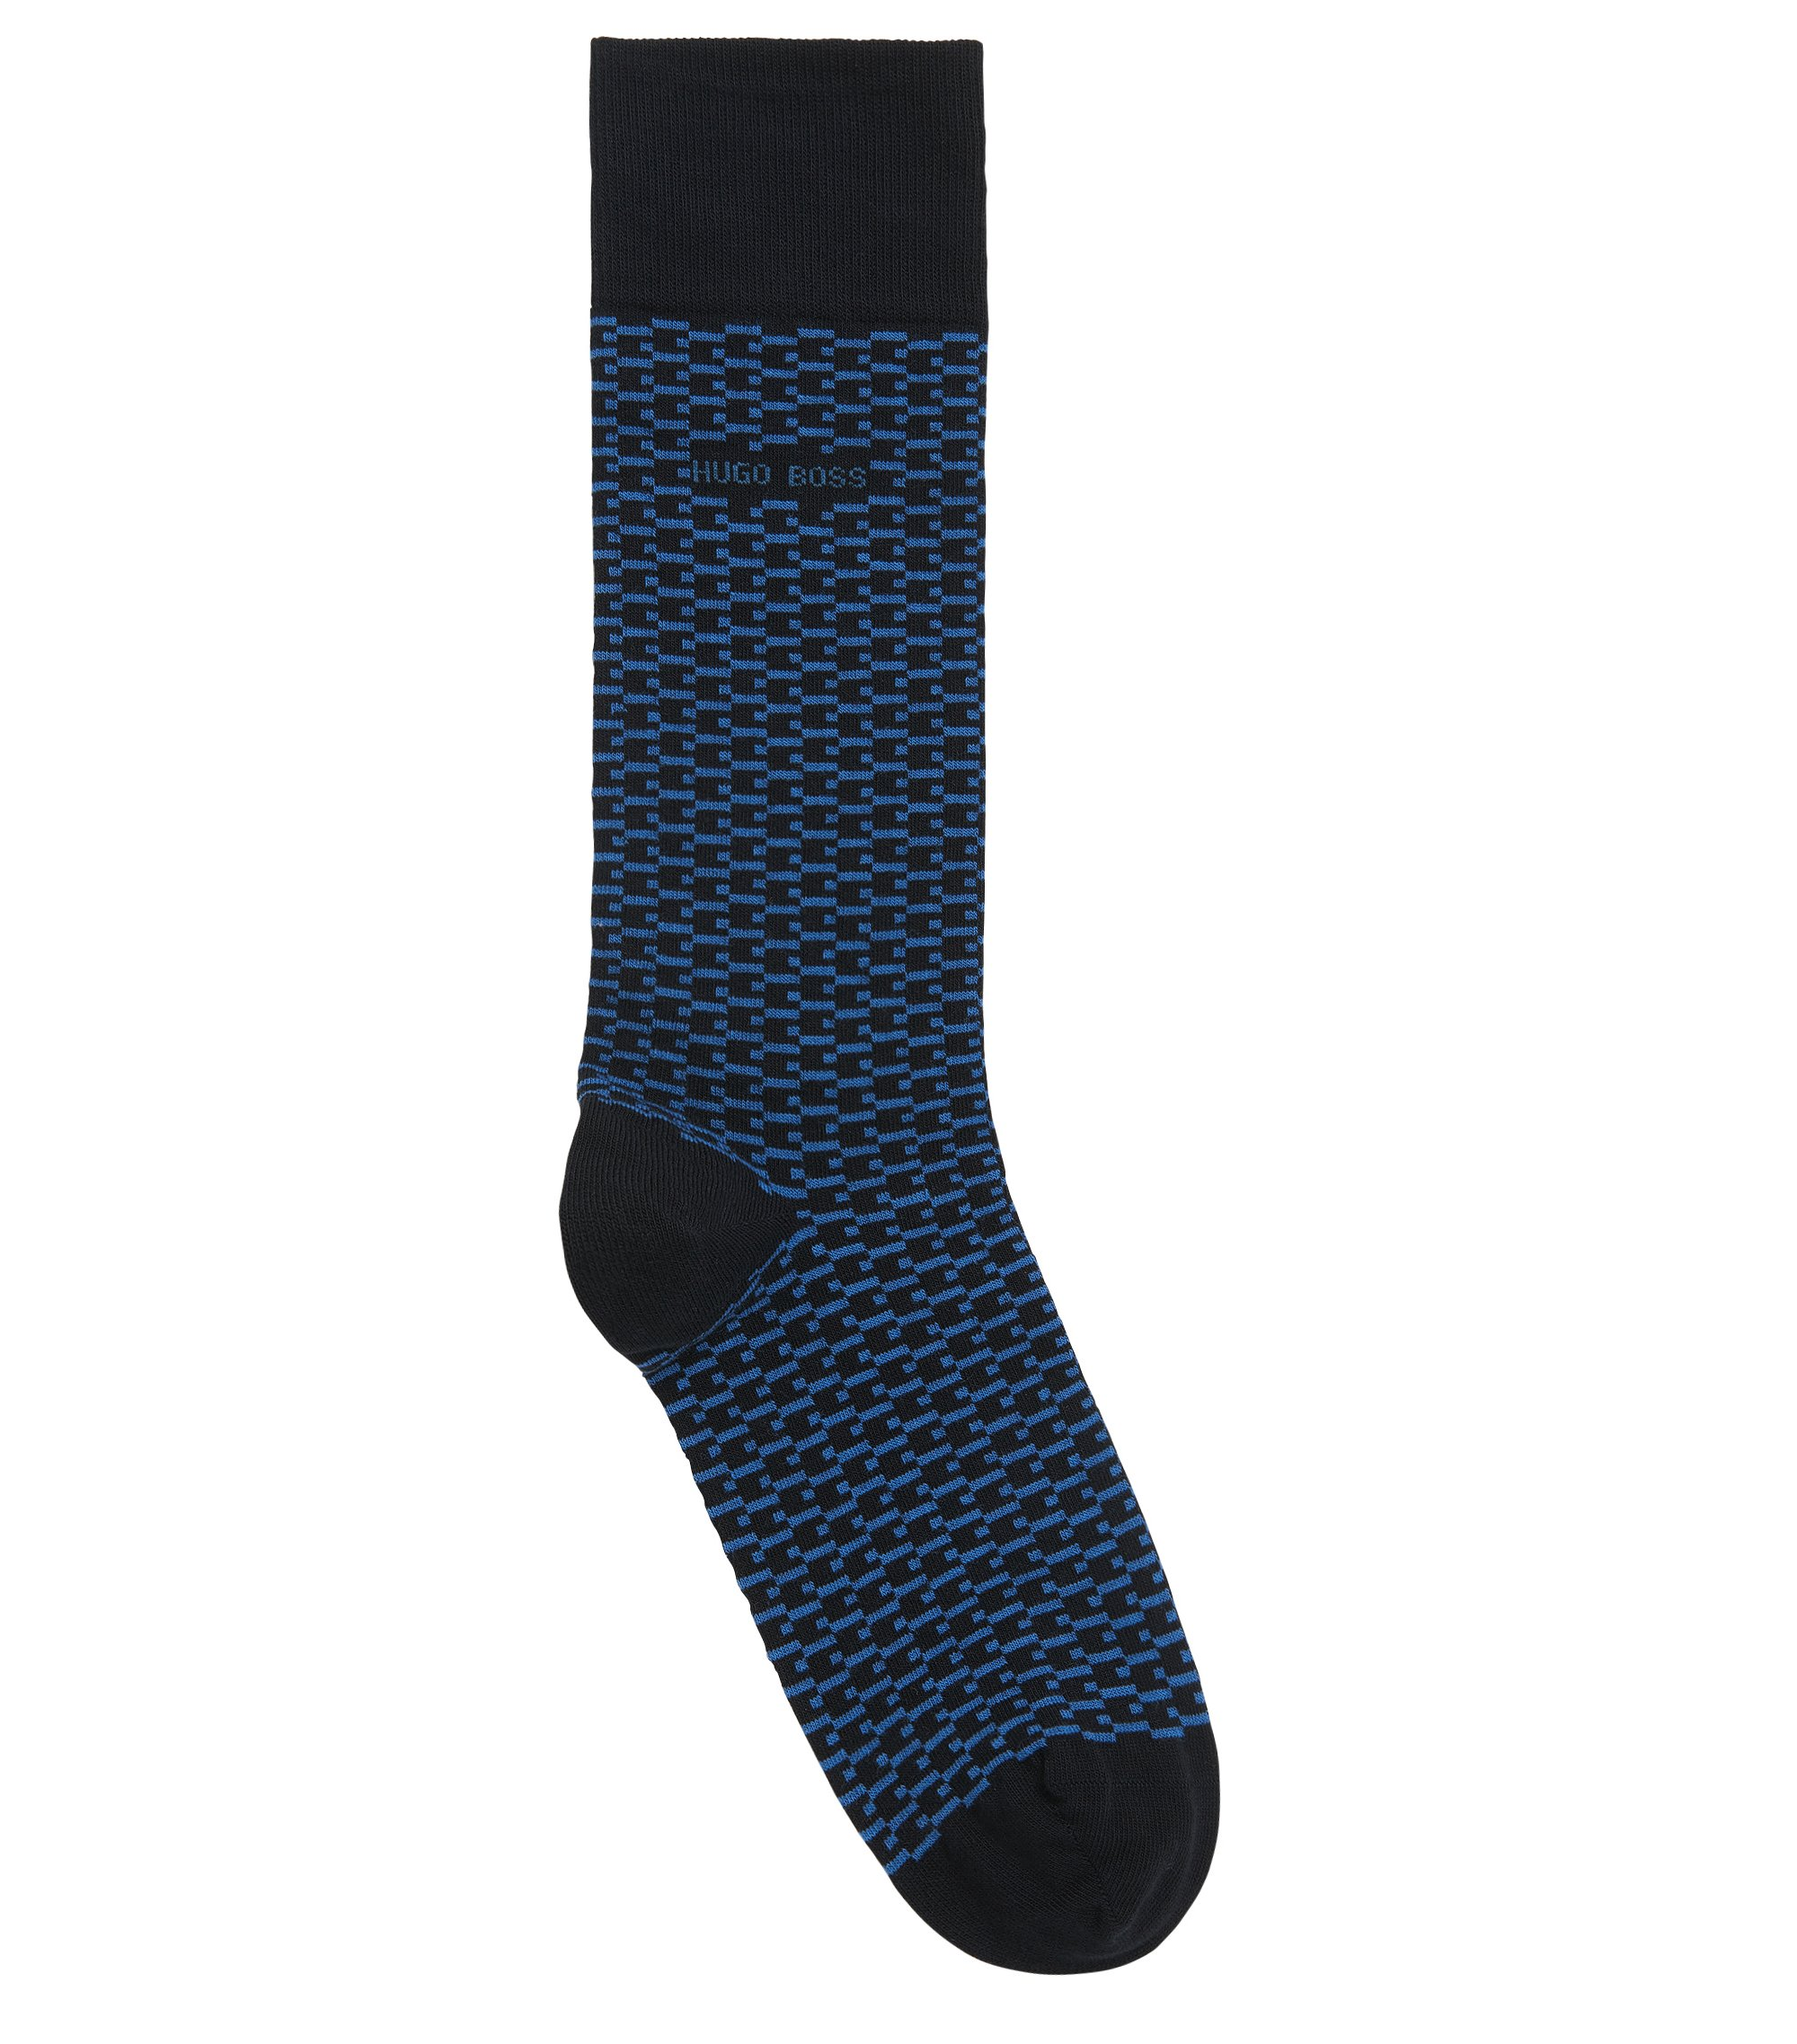 Stretch Cotton Blend Sock | RS MiniPattern US CC, Dark Blue